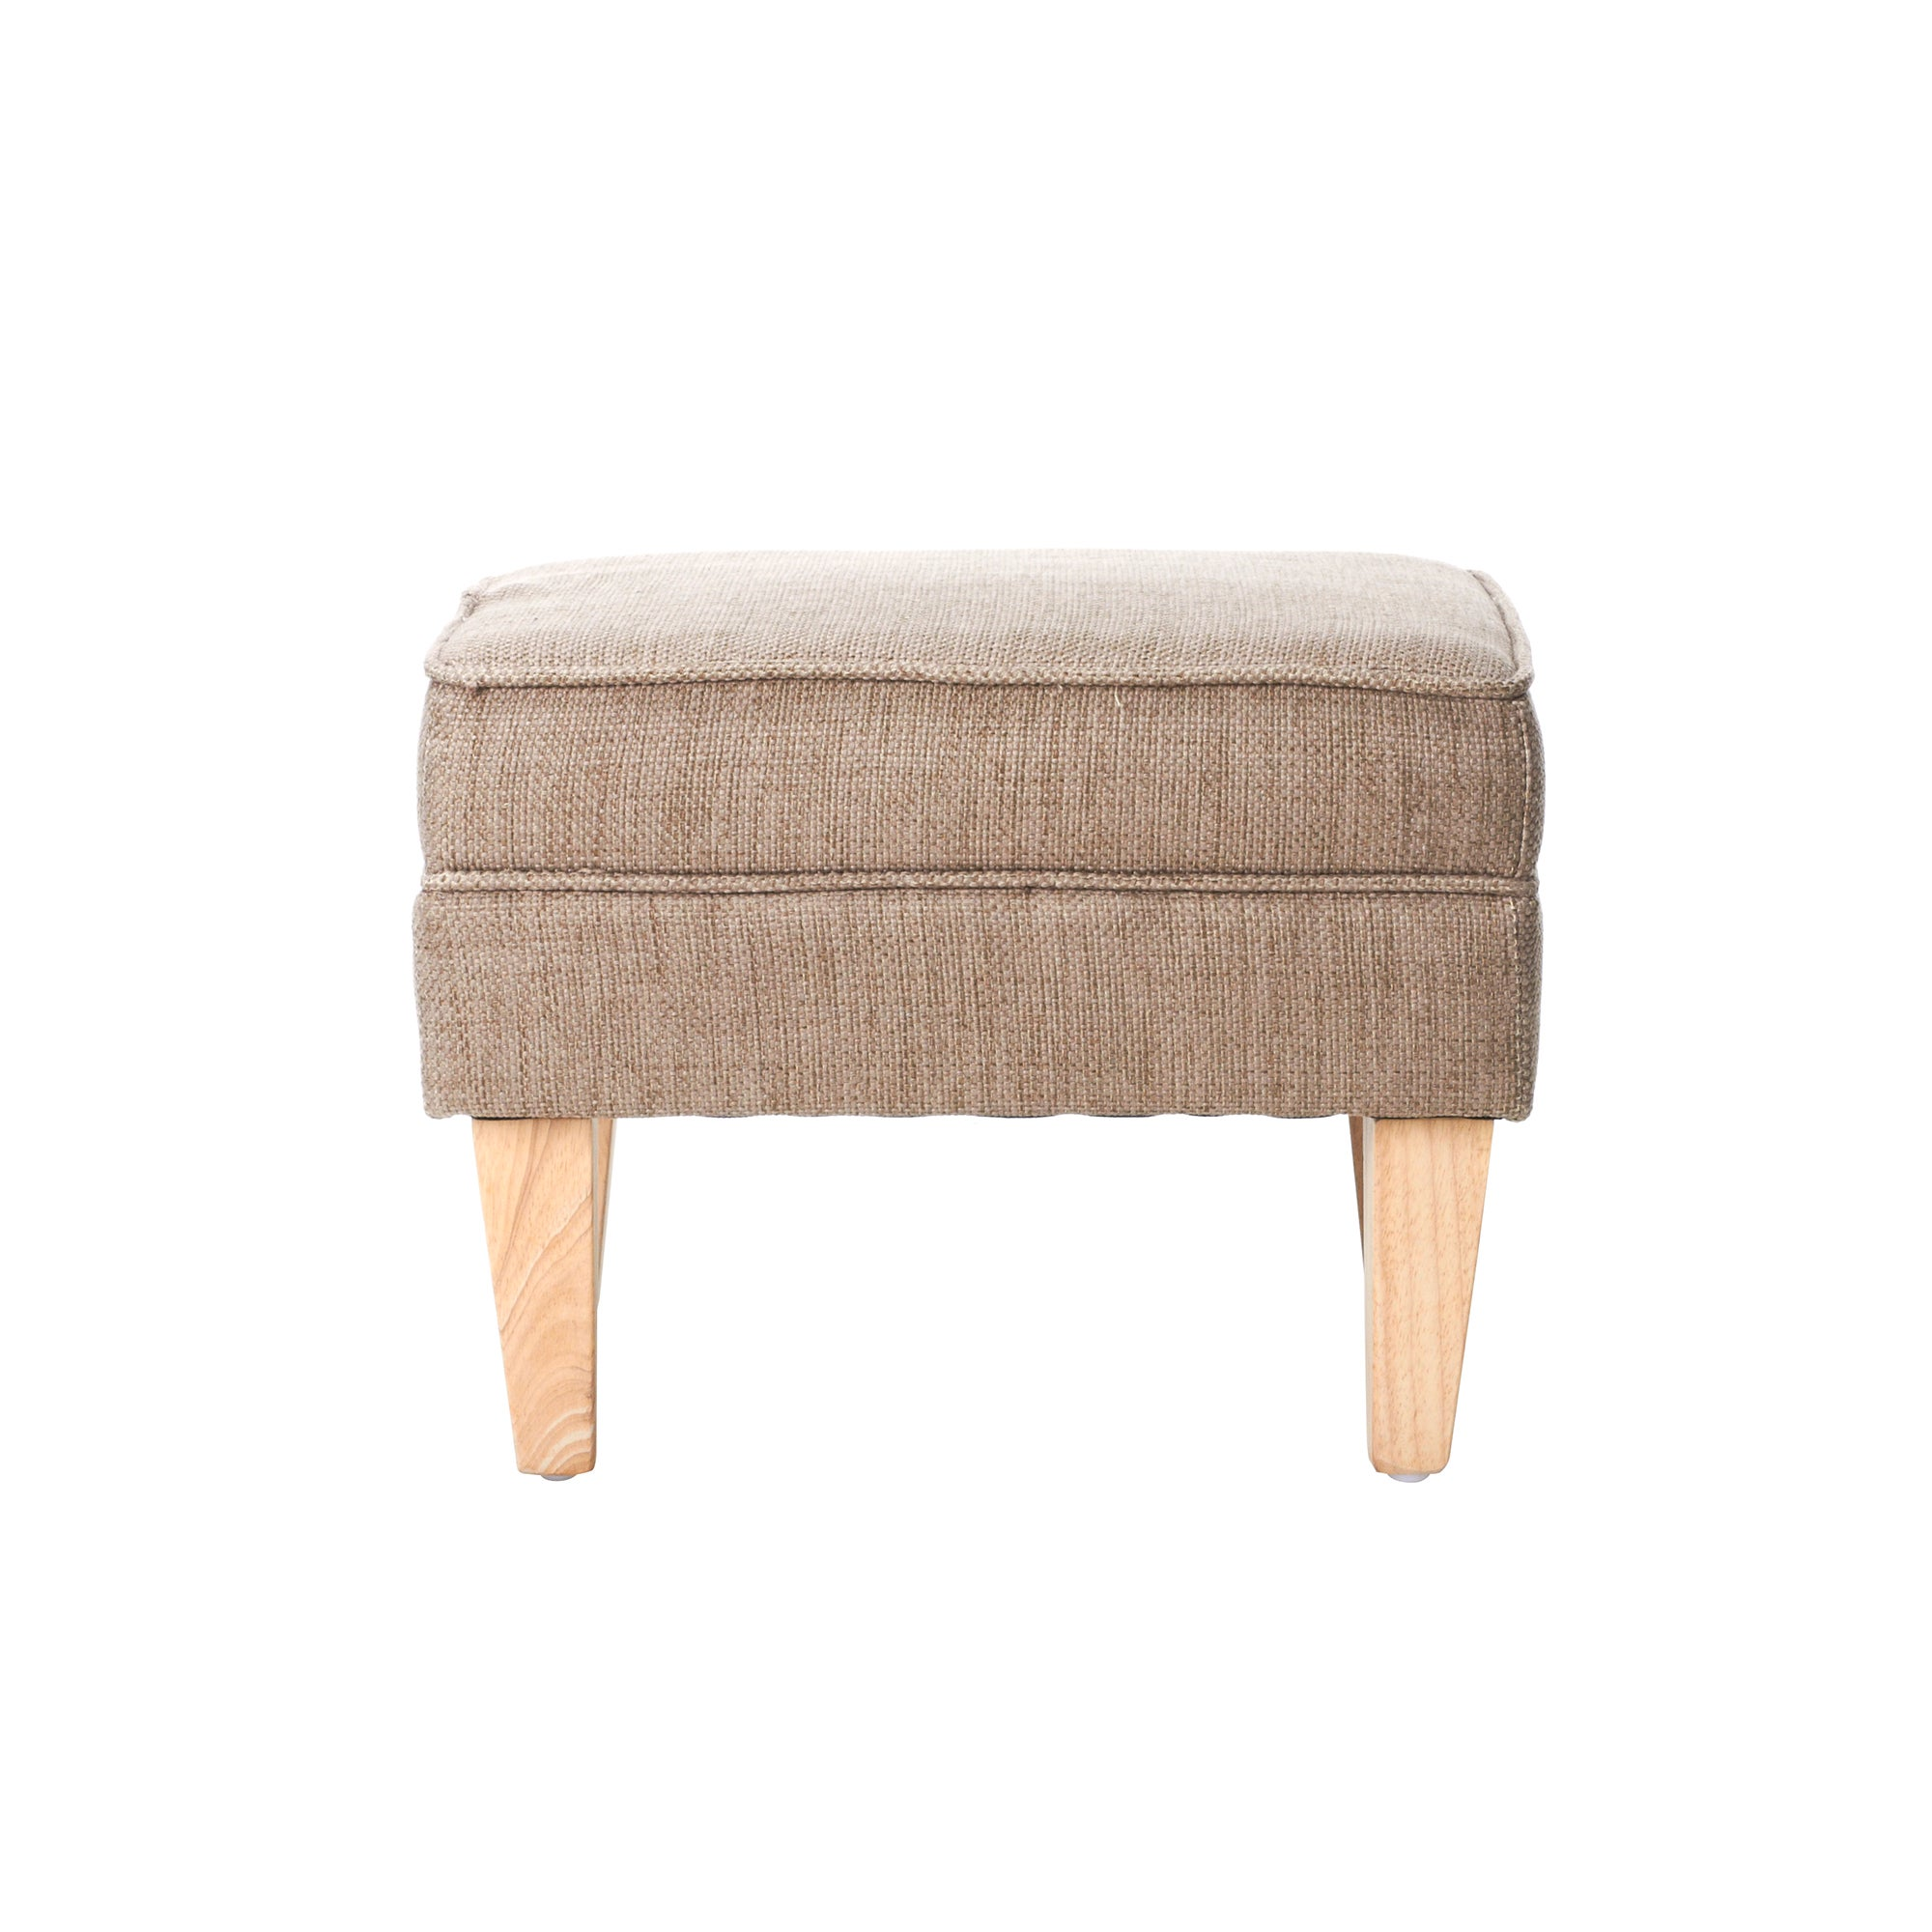 Oatmeal Edinburgh Footstool